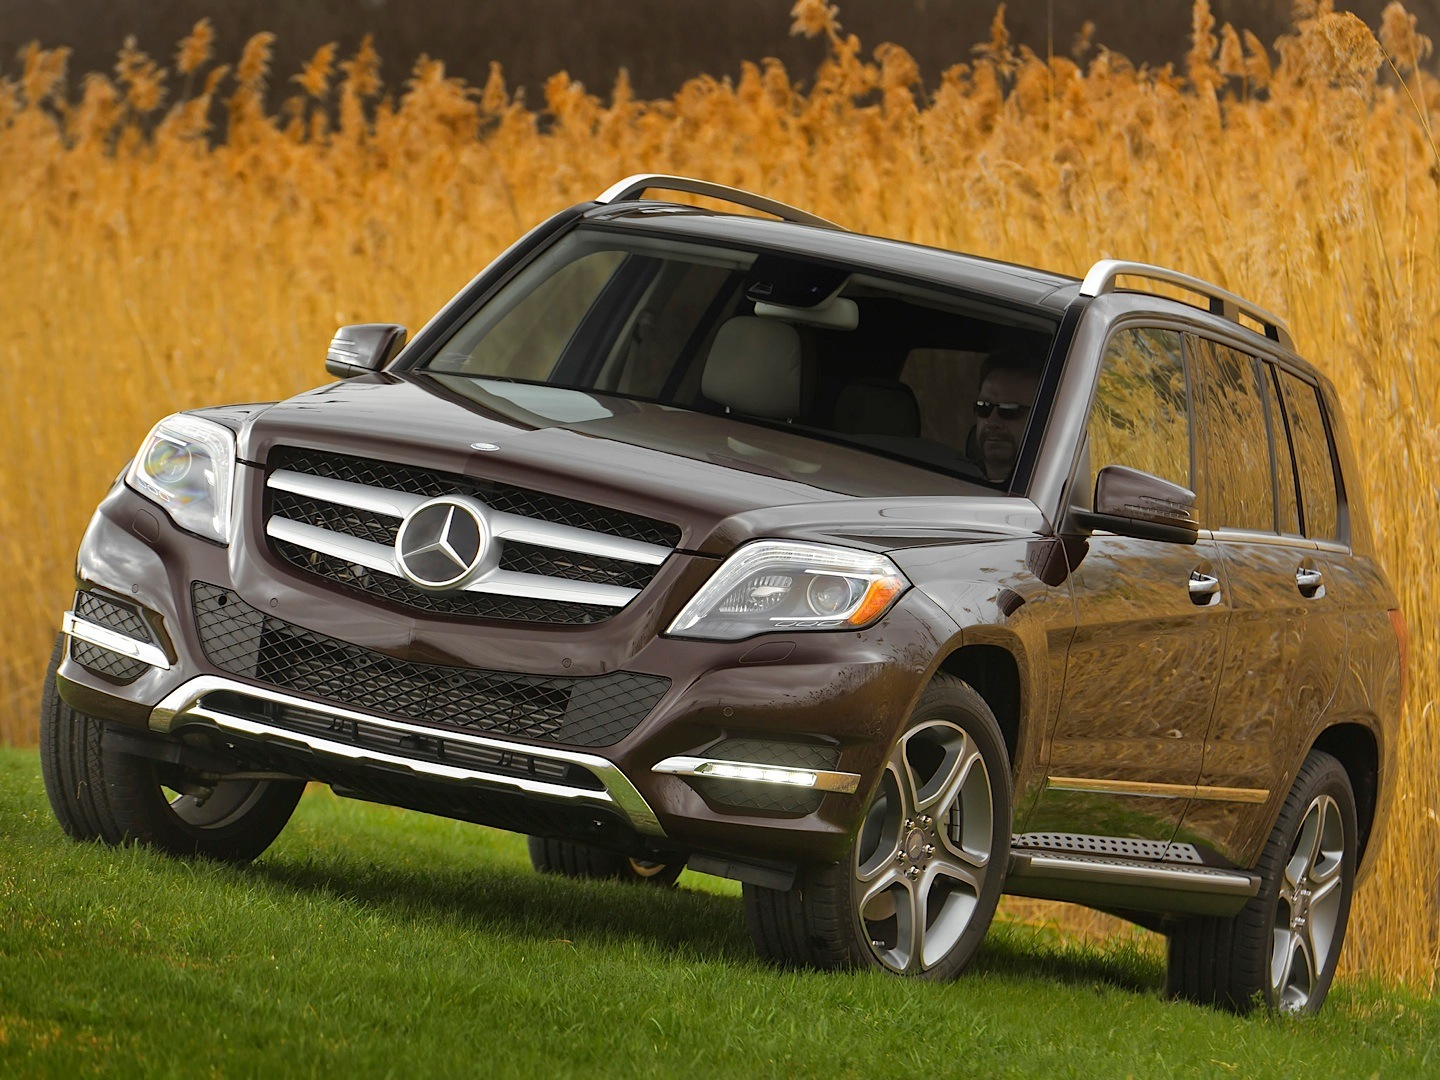 mercedes benz glk 250 bluetec vs audi q3 3 0 tdi. Black Bedroom Furniture Sets. Home Design Ideas